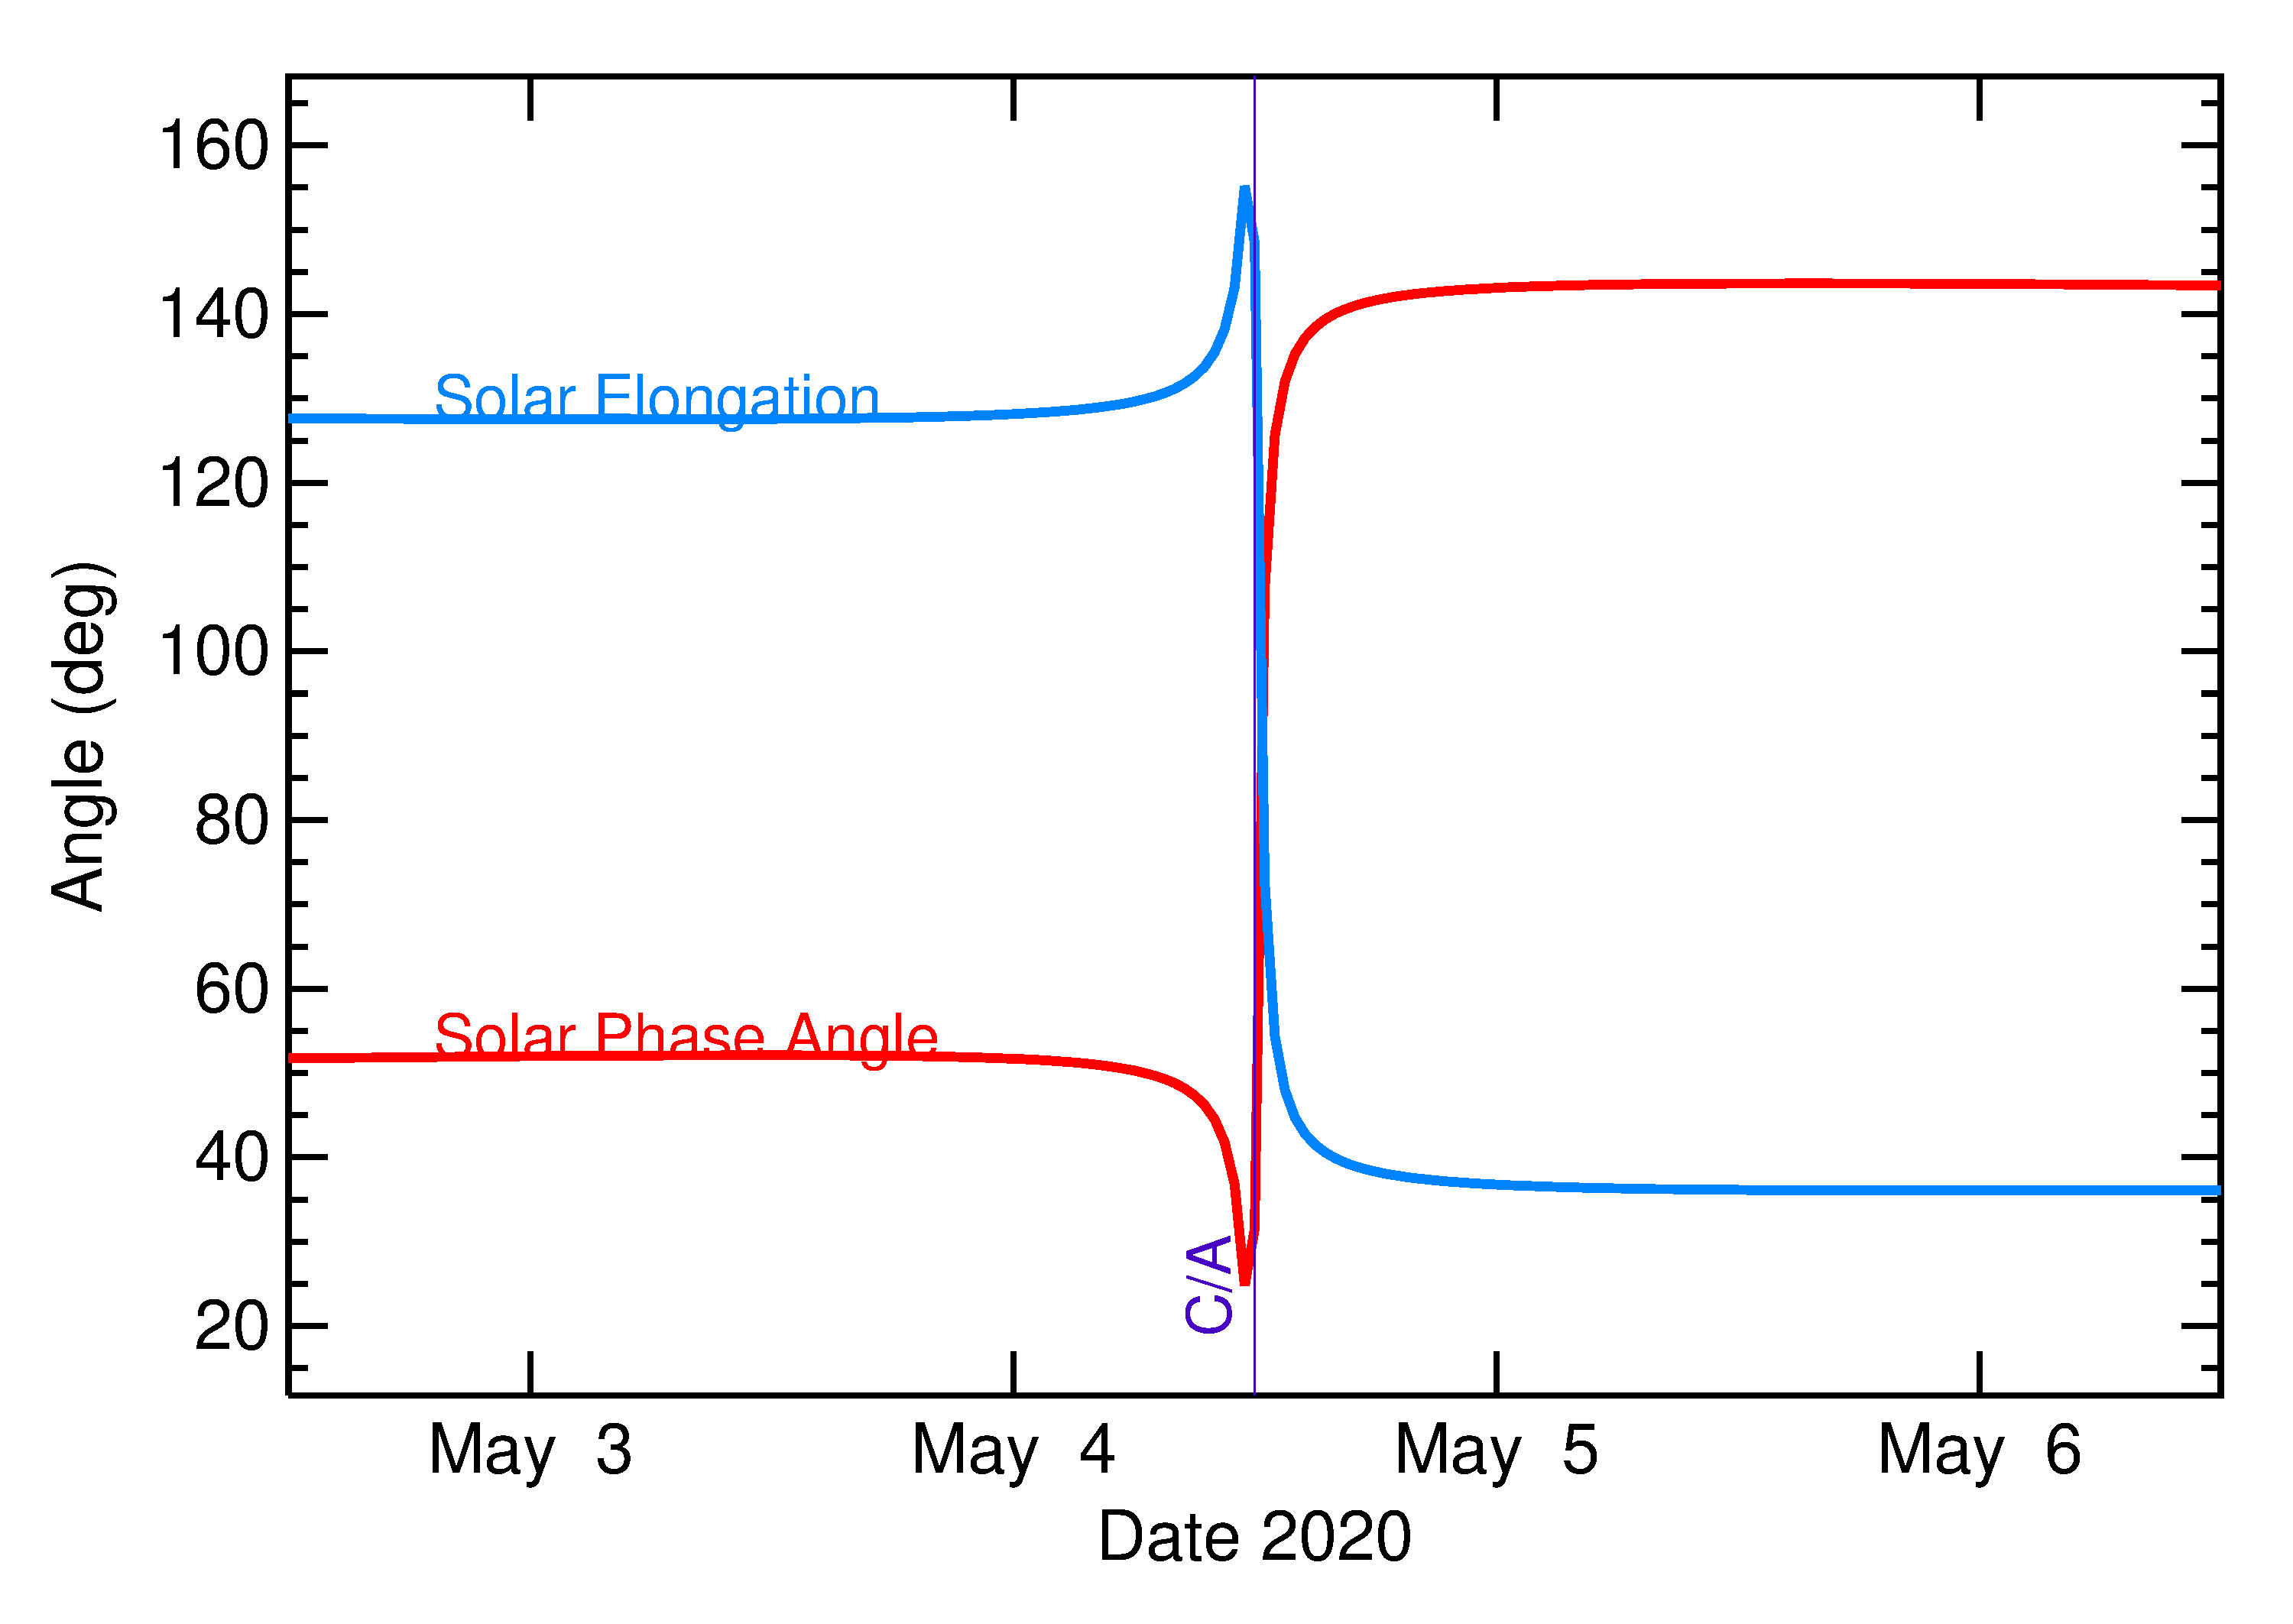 Solar Elongation and Solar Phase Angle of 2020 JJ in the days around closest approach